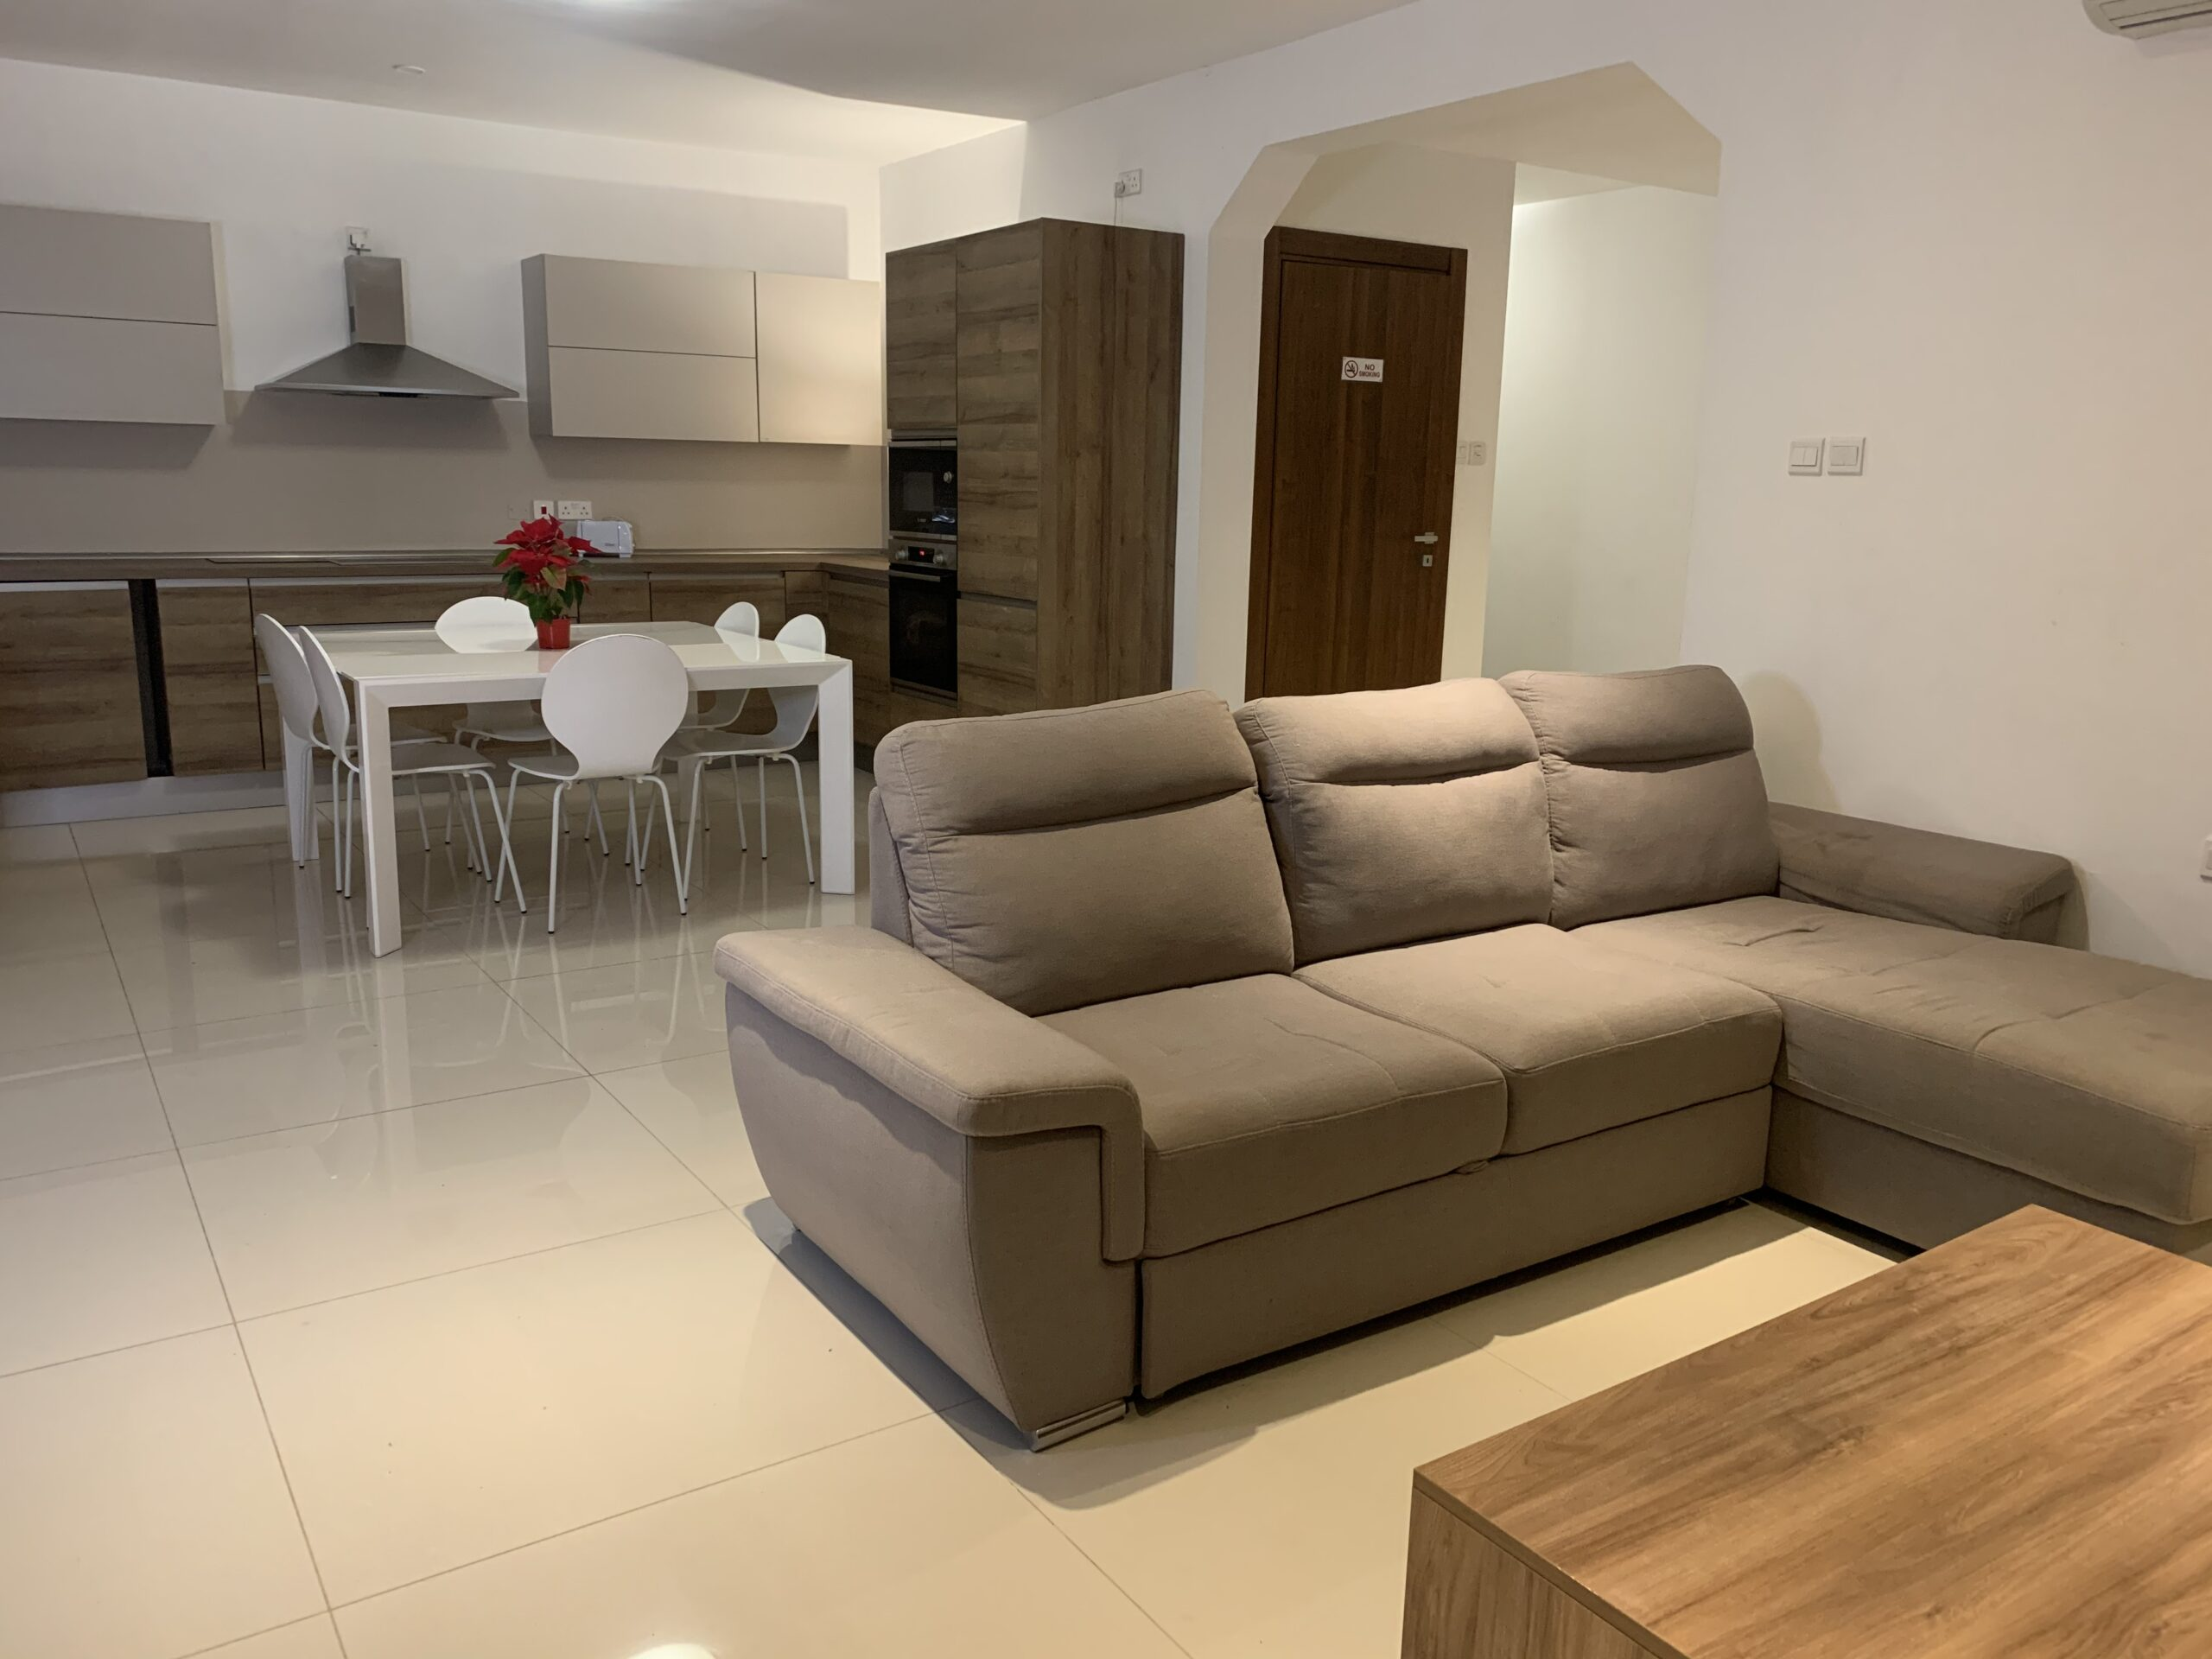 The kitchen and living area at our shared superior residences in Malta